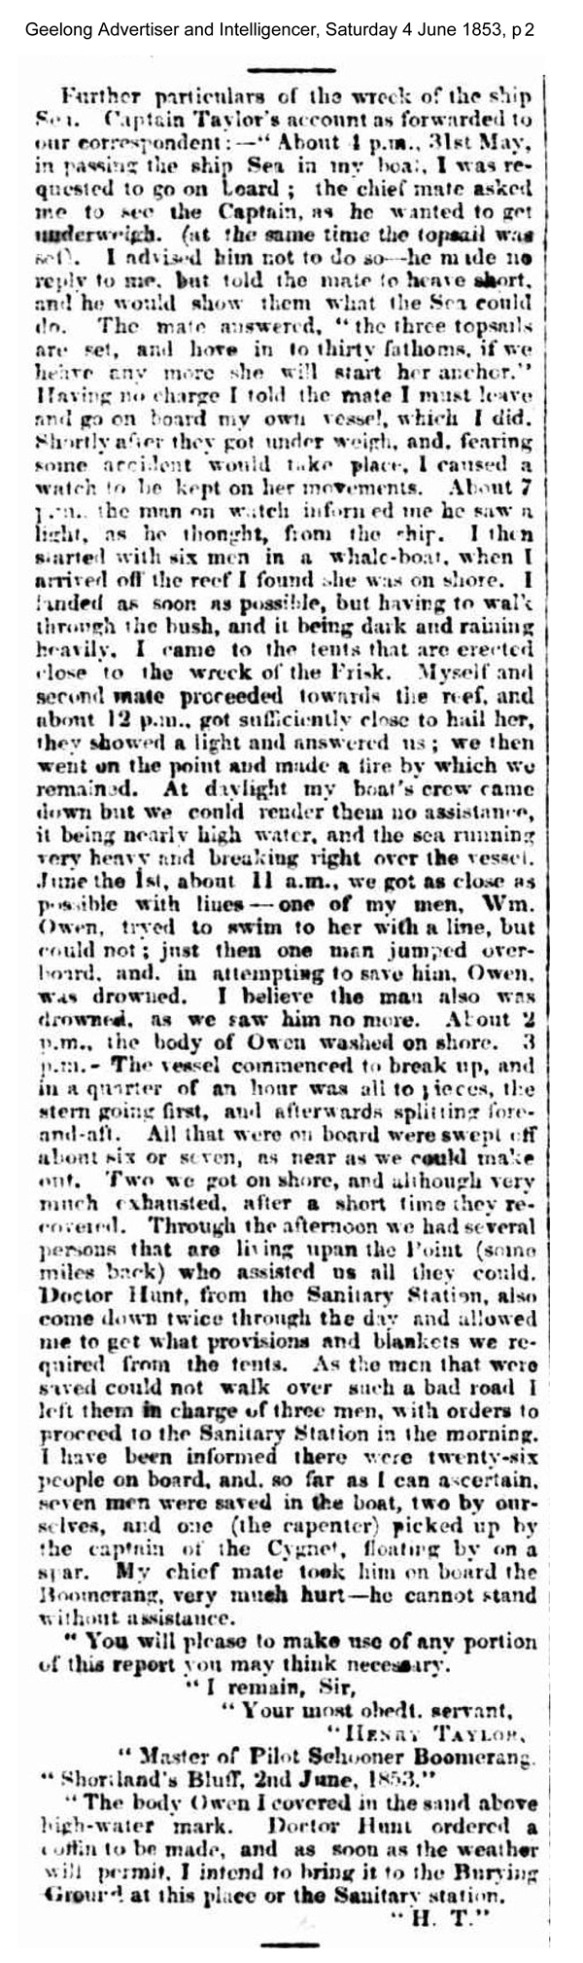 news - Sea 1853 geelong advertiser and Intelligencer